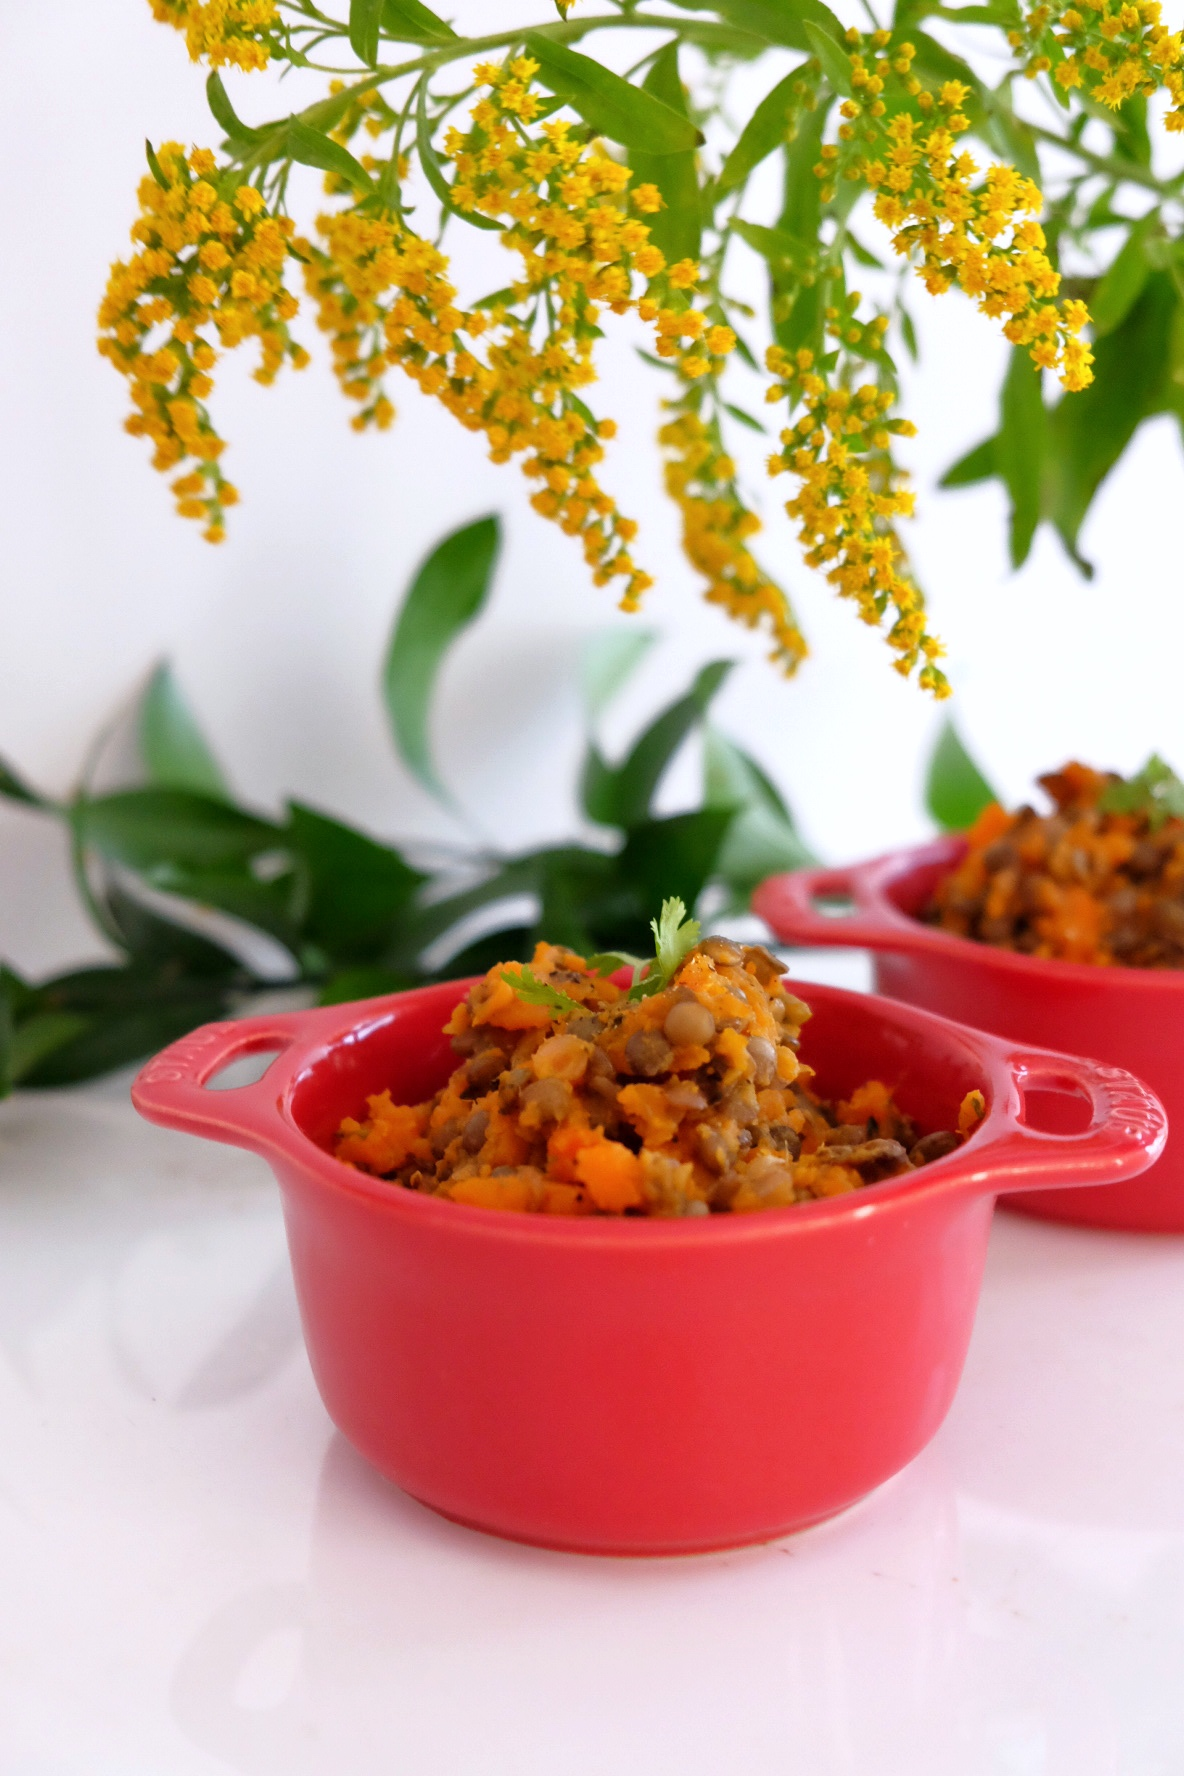 Mashed sweet potatoes with carrots and lentils